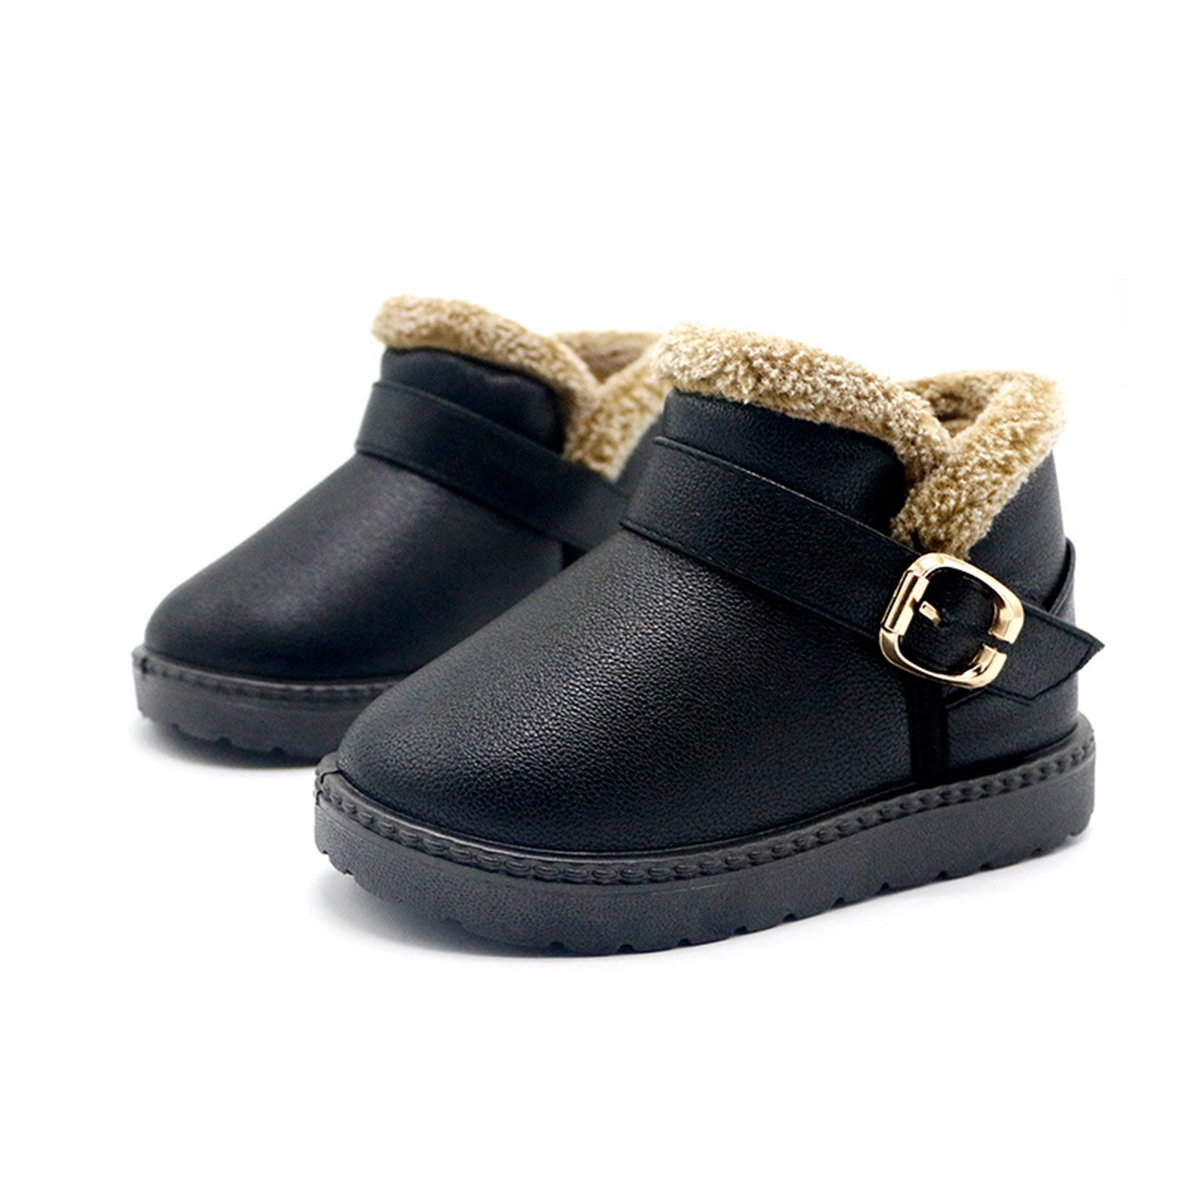 TAIYCYXGAN Baby Girls Boys Winter Snow Boots Kids Warm Faux Fur Leather Boots Waterproof Shoes